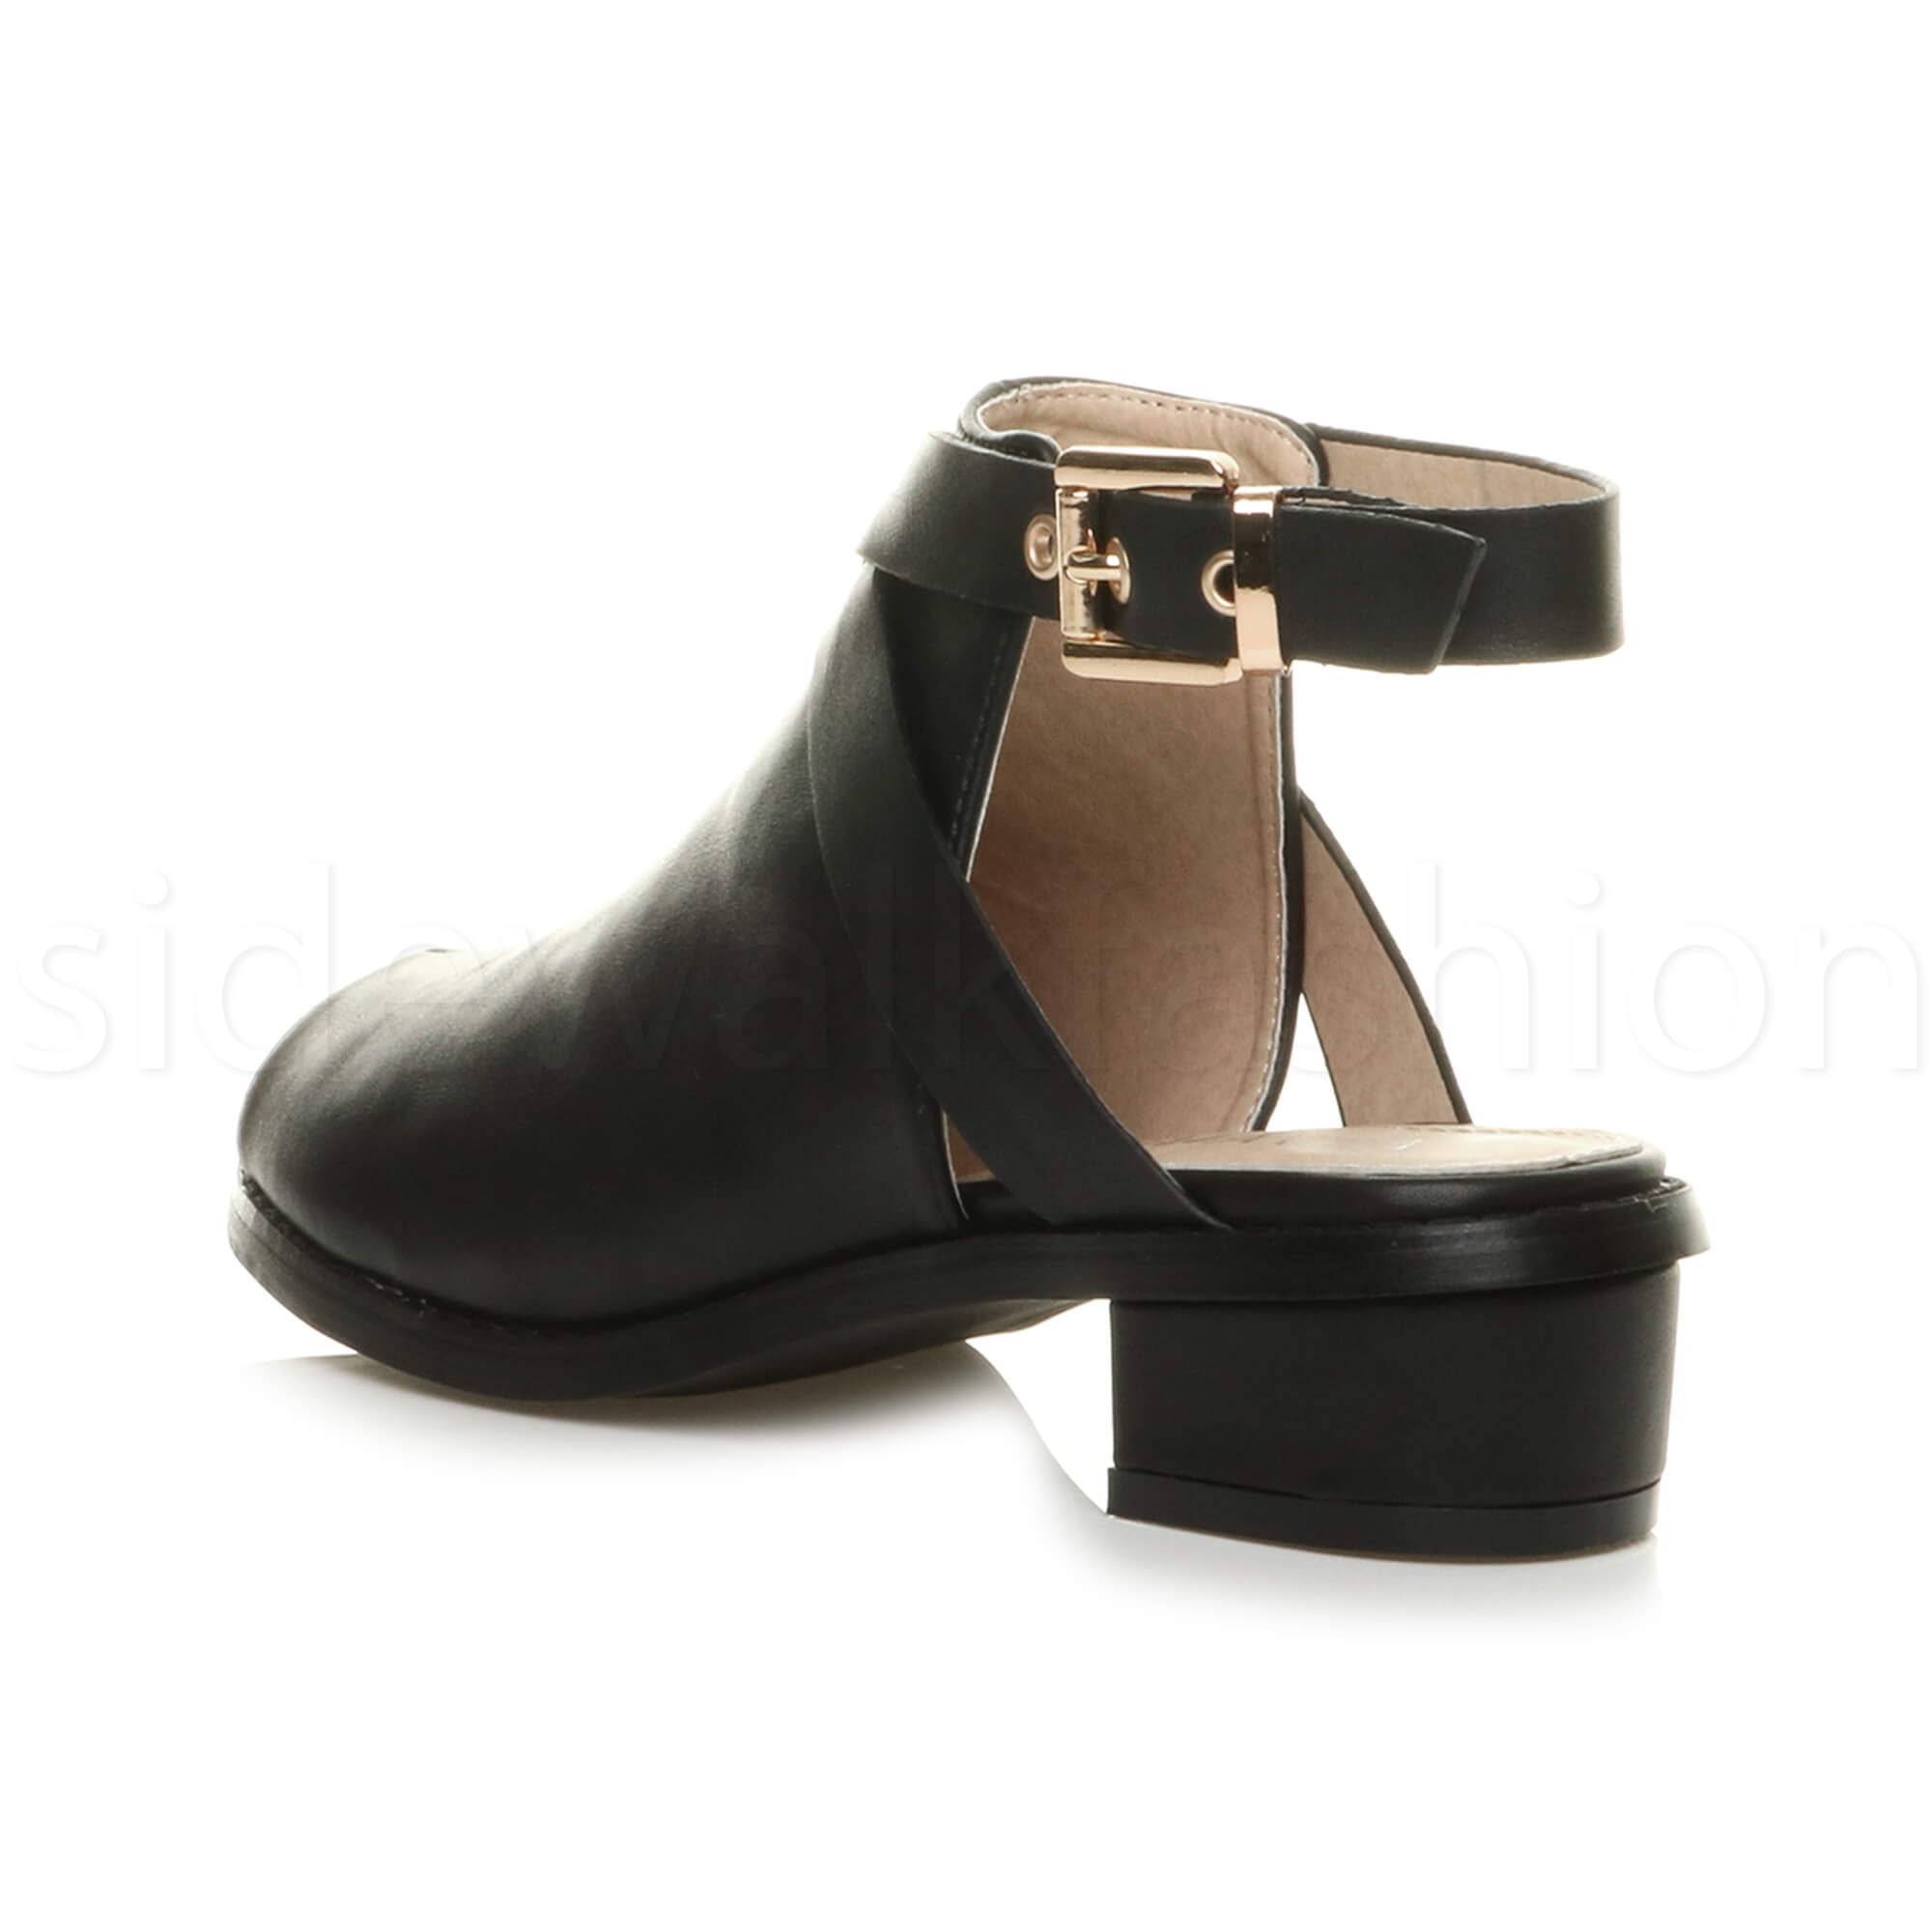 Black Ankle Shoes For Business